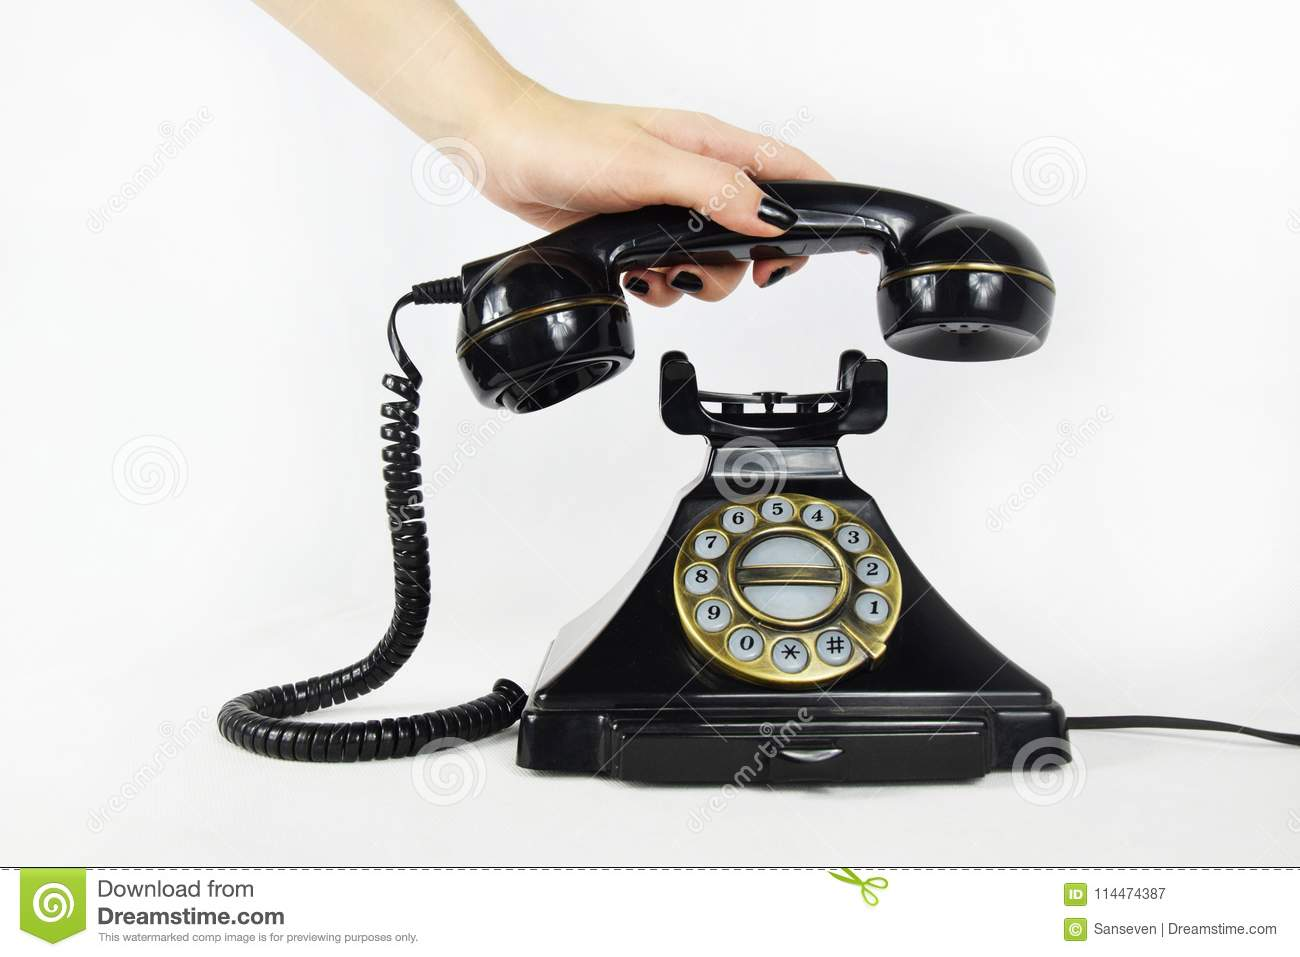 Retro Telephone, hand picking up the receiver